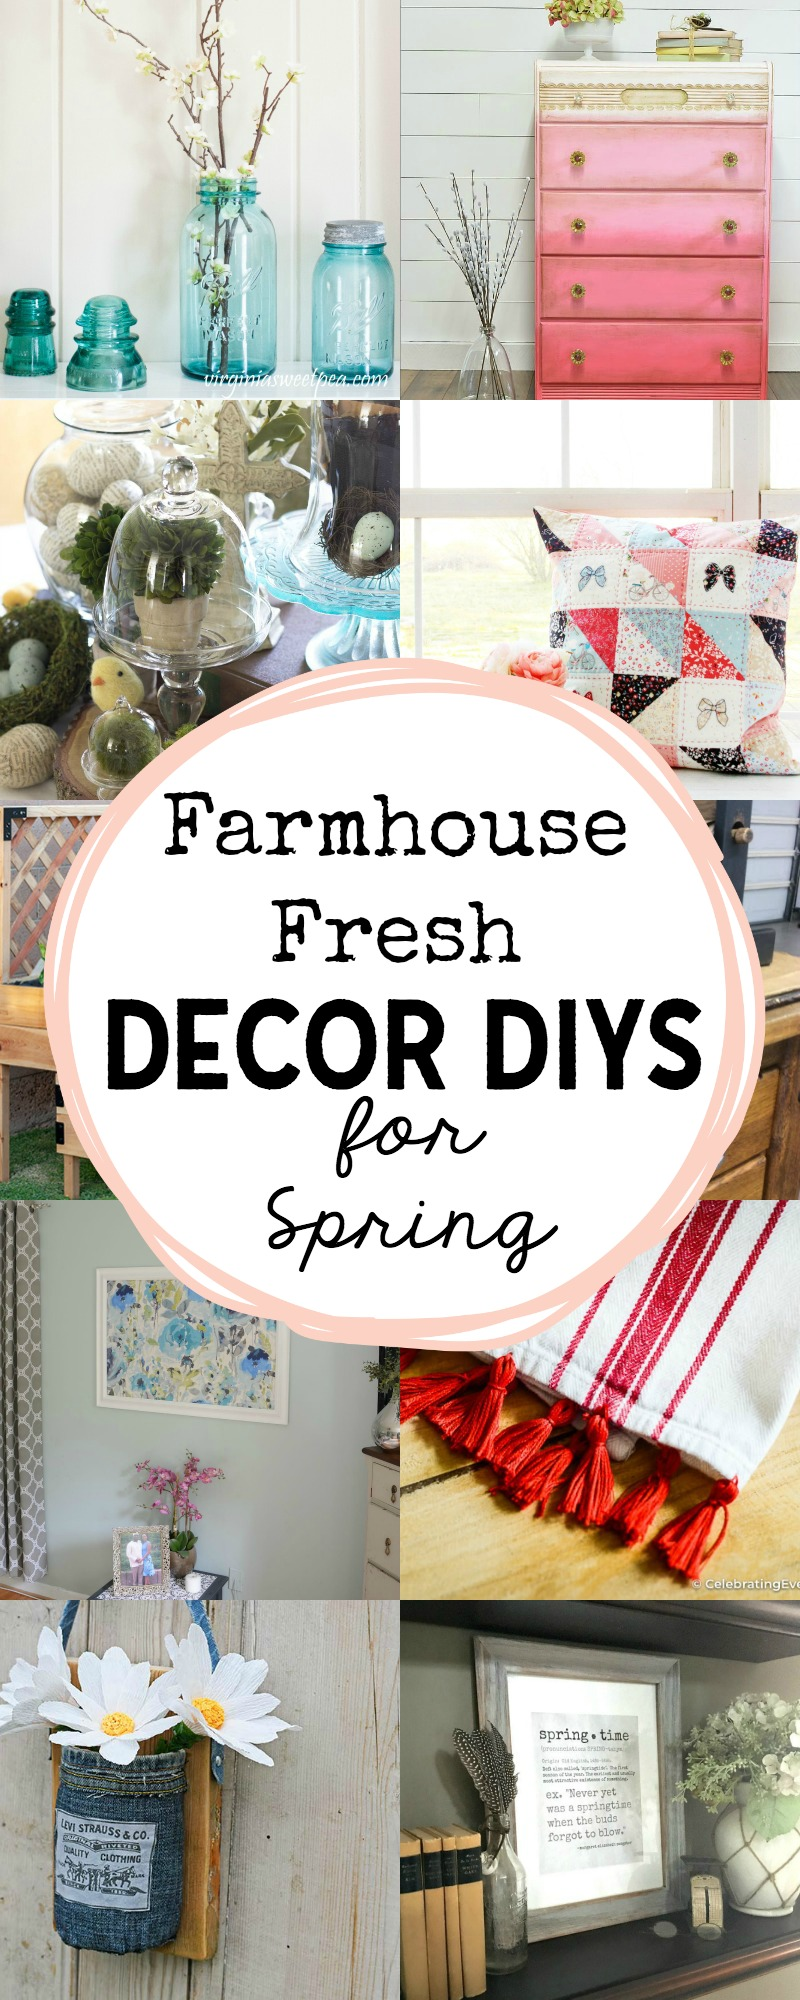 Farmhouse Fresh Decor DIYs for Spring